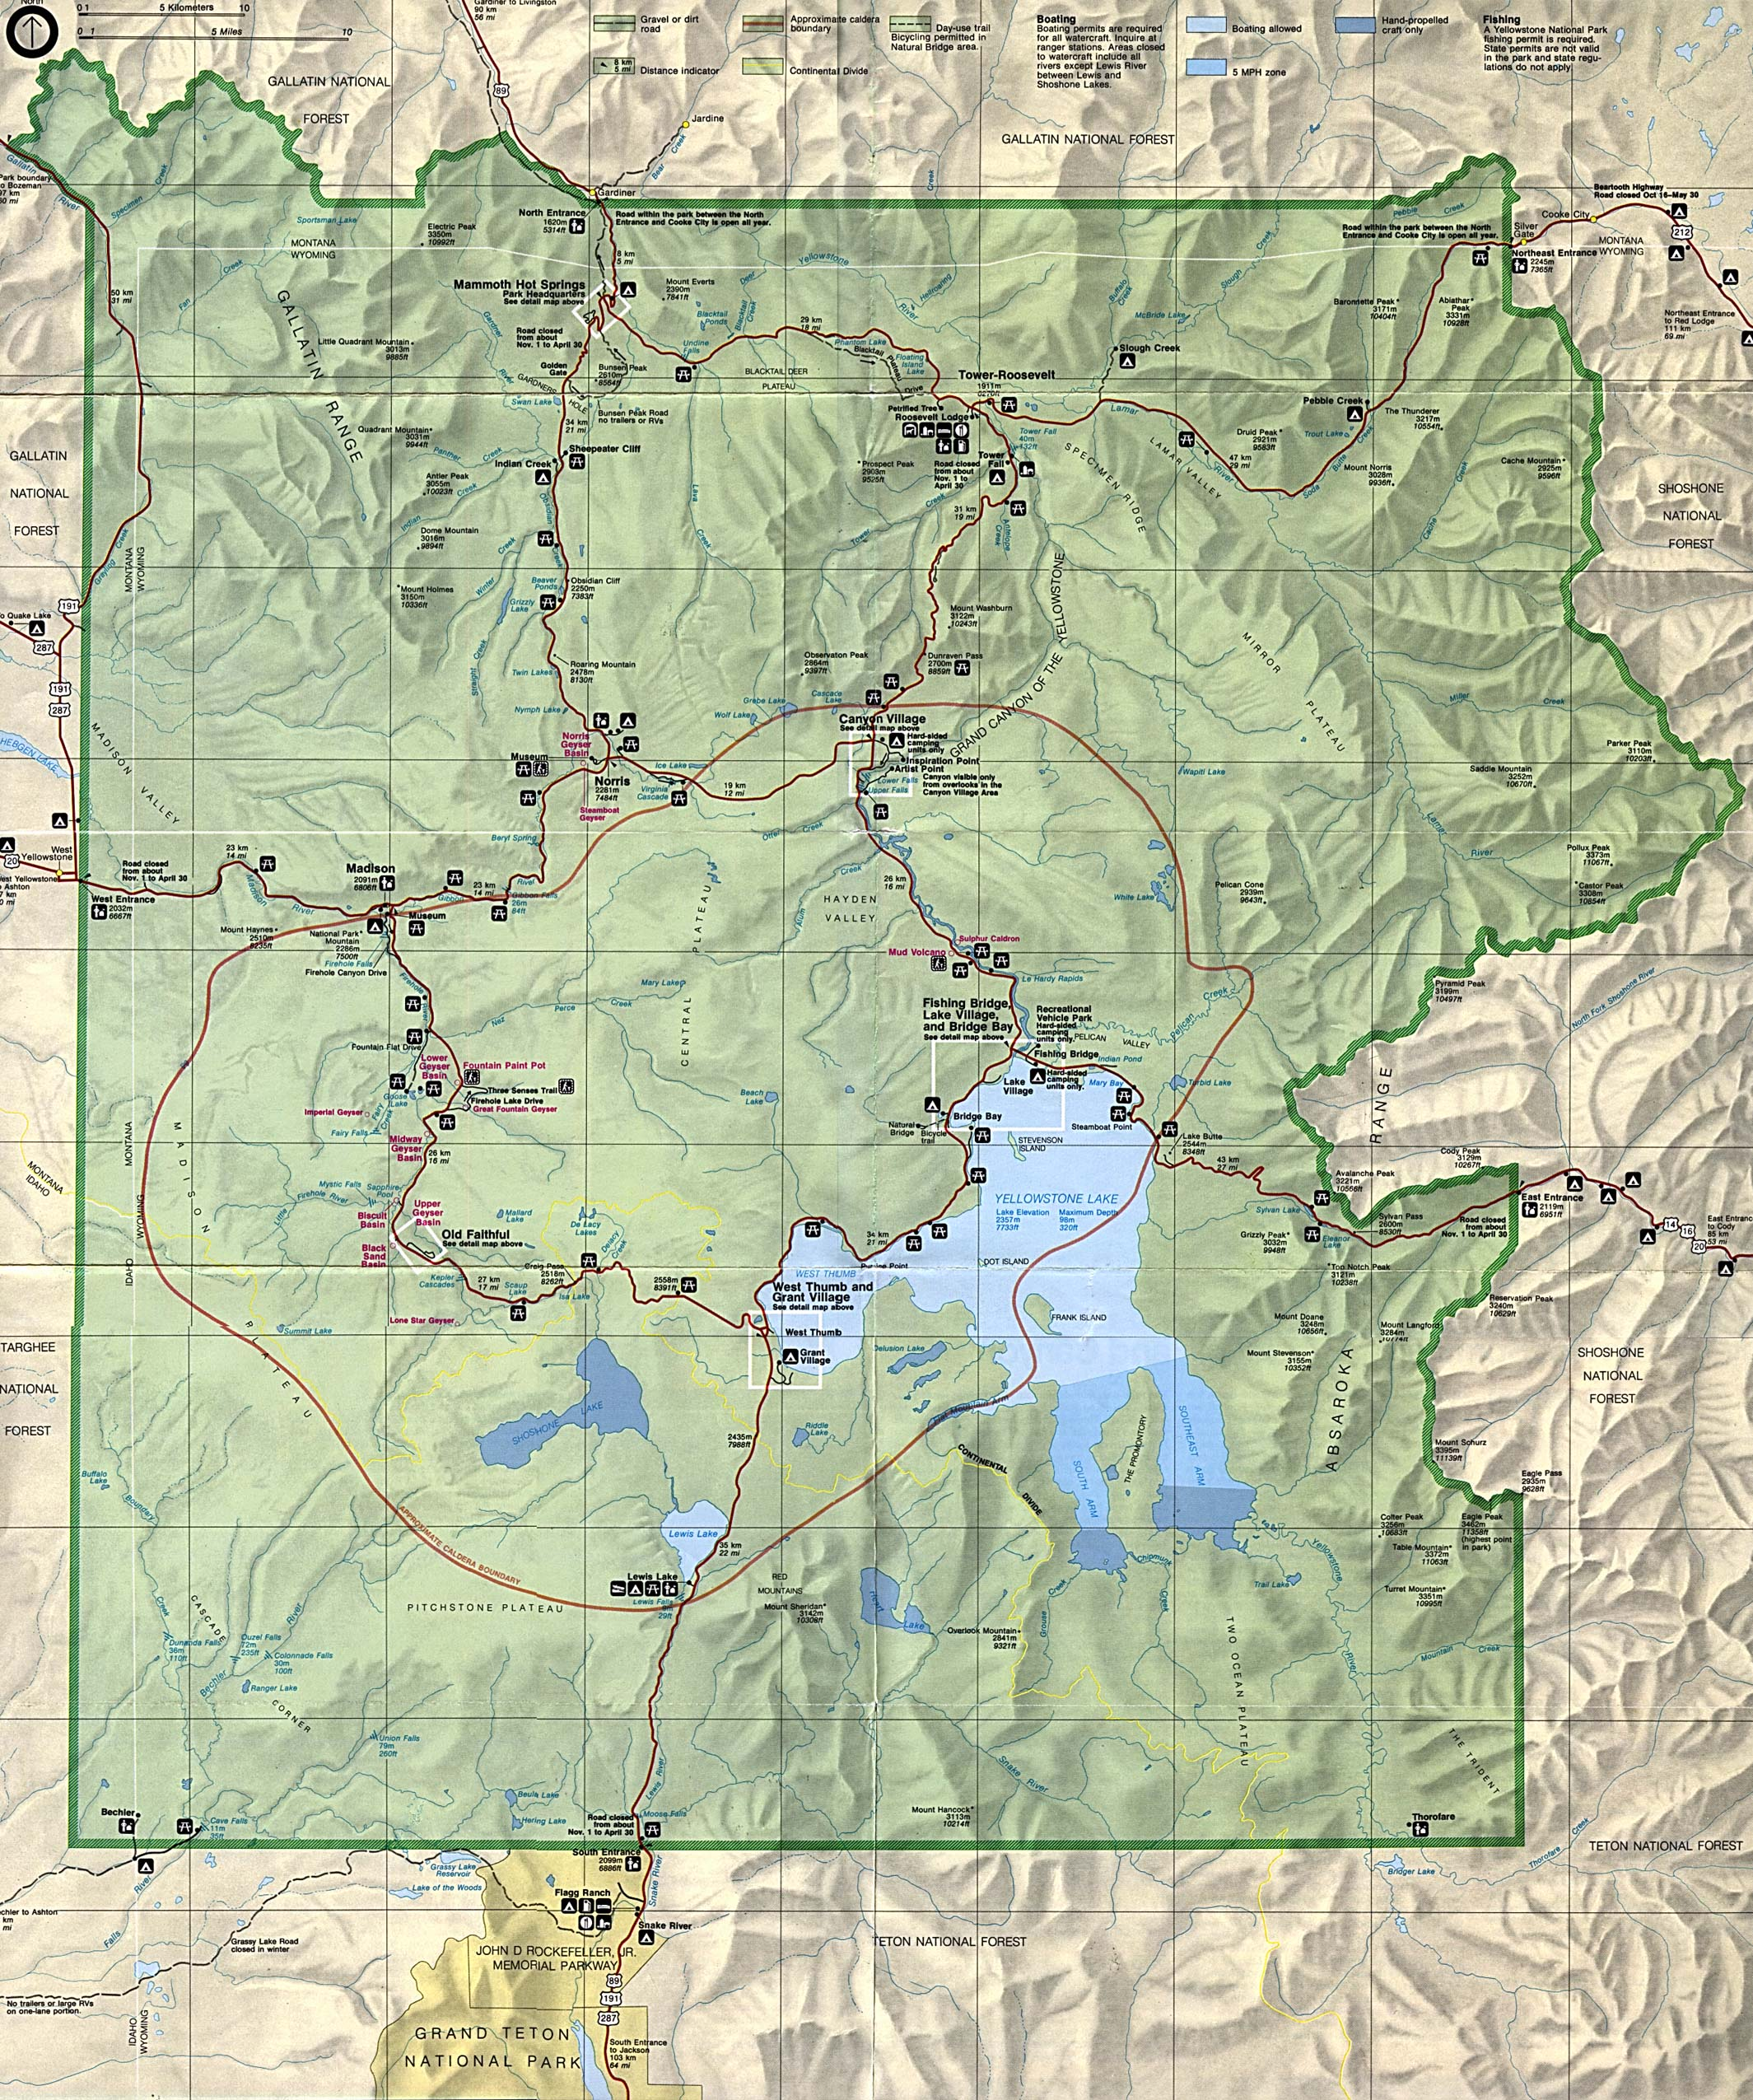 Yellowstone-g-earth-bundle Yellowstone Google Map on colorado google maps, everglades google maps, utah google maps, the alps google maps, wyoming google maps, badlands google maps, florida google maps, caroline google maps, appalachian trail google maps, columbia google maps, garfield google maps, fort velasco google maps, texas google maps, georgetown google maps, mount rainier google maps, california google maps, devils tower google maps, butte google maps, washington google maps, wildwood google maps,